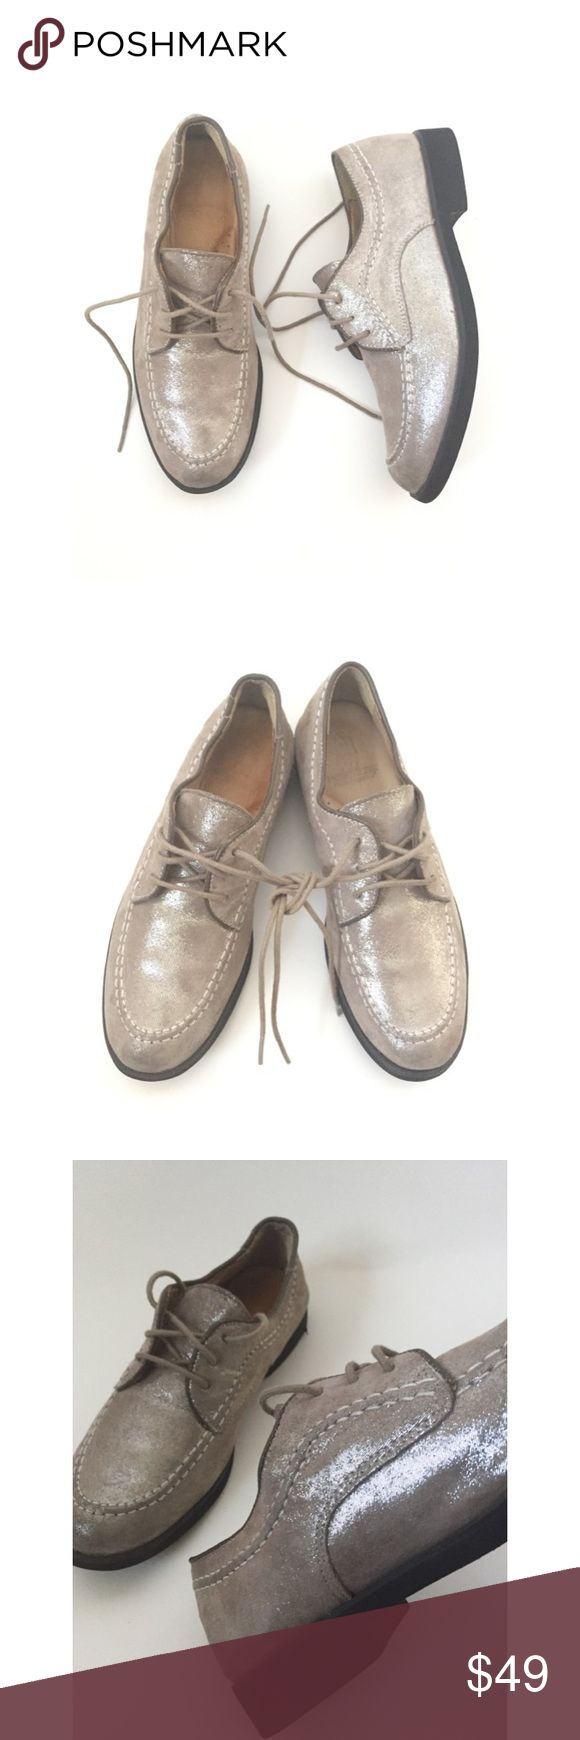 Hush Puppies Suede Leather Silver Metallic Oxfords LIFETIME OXFORDS Exposed stitching adds style and flair to a modern oxford featuring design influences from the iconic '50s collection. Lace-up style. Iridescent / holographic  • Wear on heel (pictured)?  SIZING: Tagged size 6 however as per online reviews, these SHOES RUN SMALL. Some recommend going 1/2 to a full size up. The inner soles measures 9.25 inches from toe to heel. Accounting for room for the toes, there is approx. 8.5 inches of…